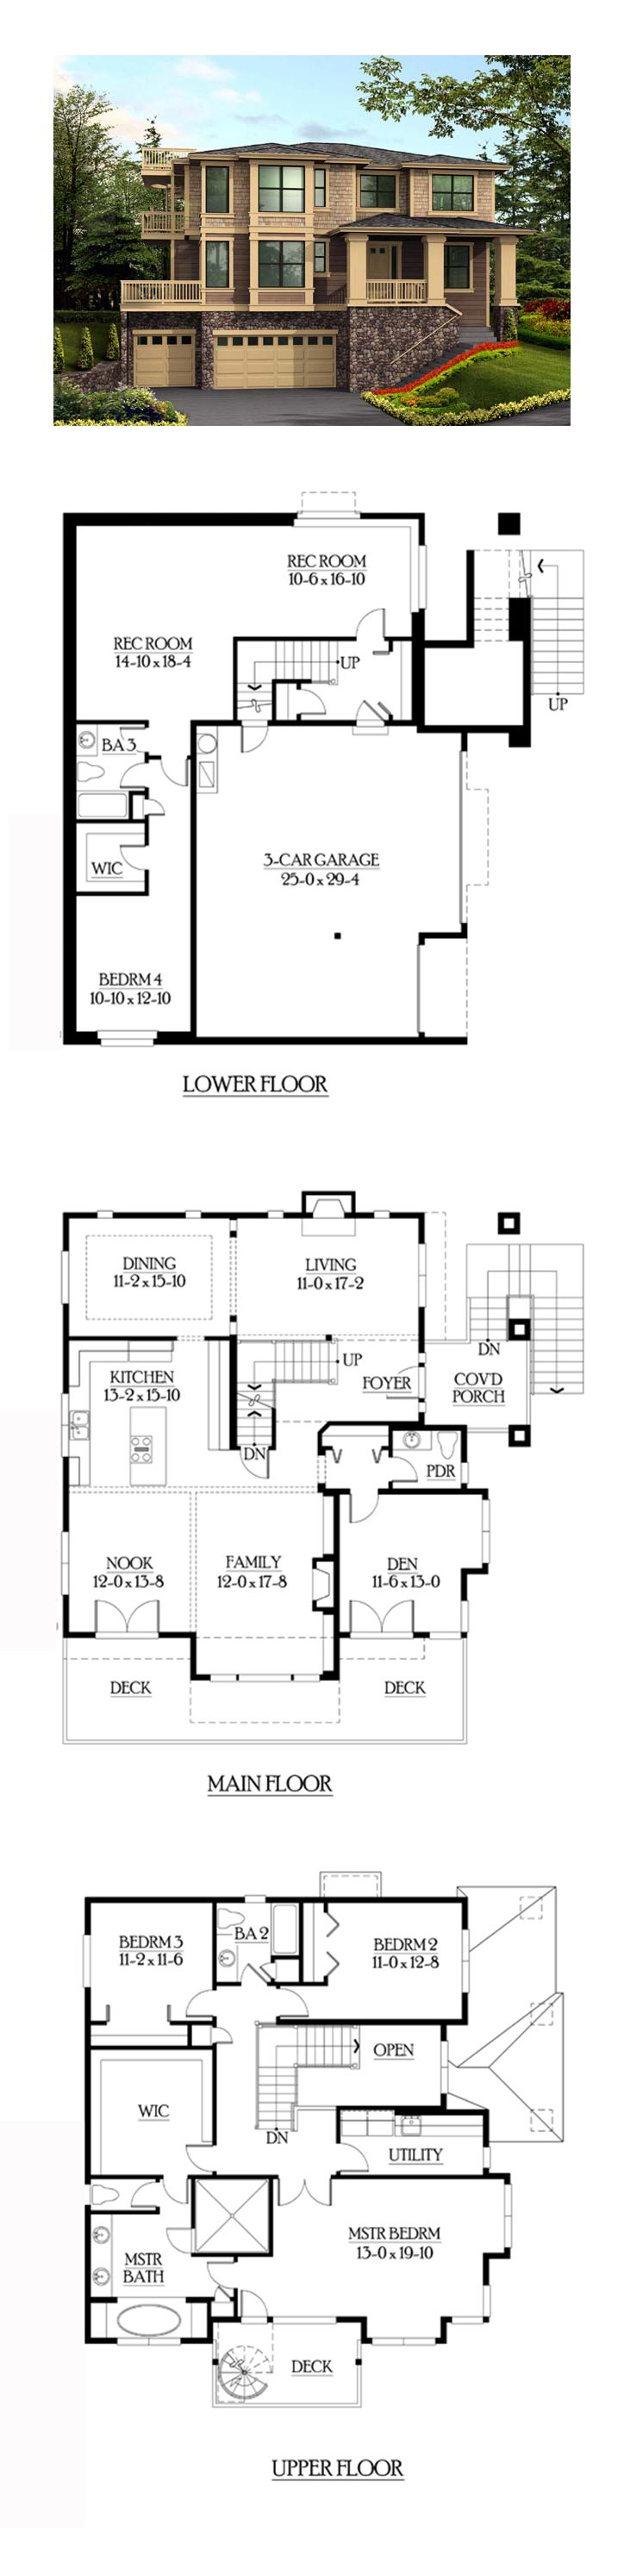 Best 25 basement house plans ideas on pinterest house for House plans with basement